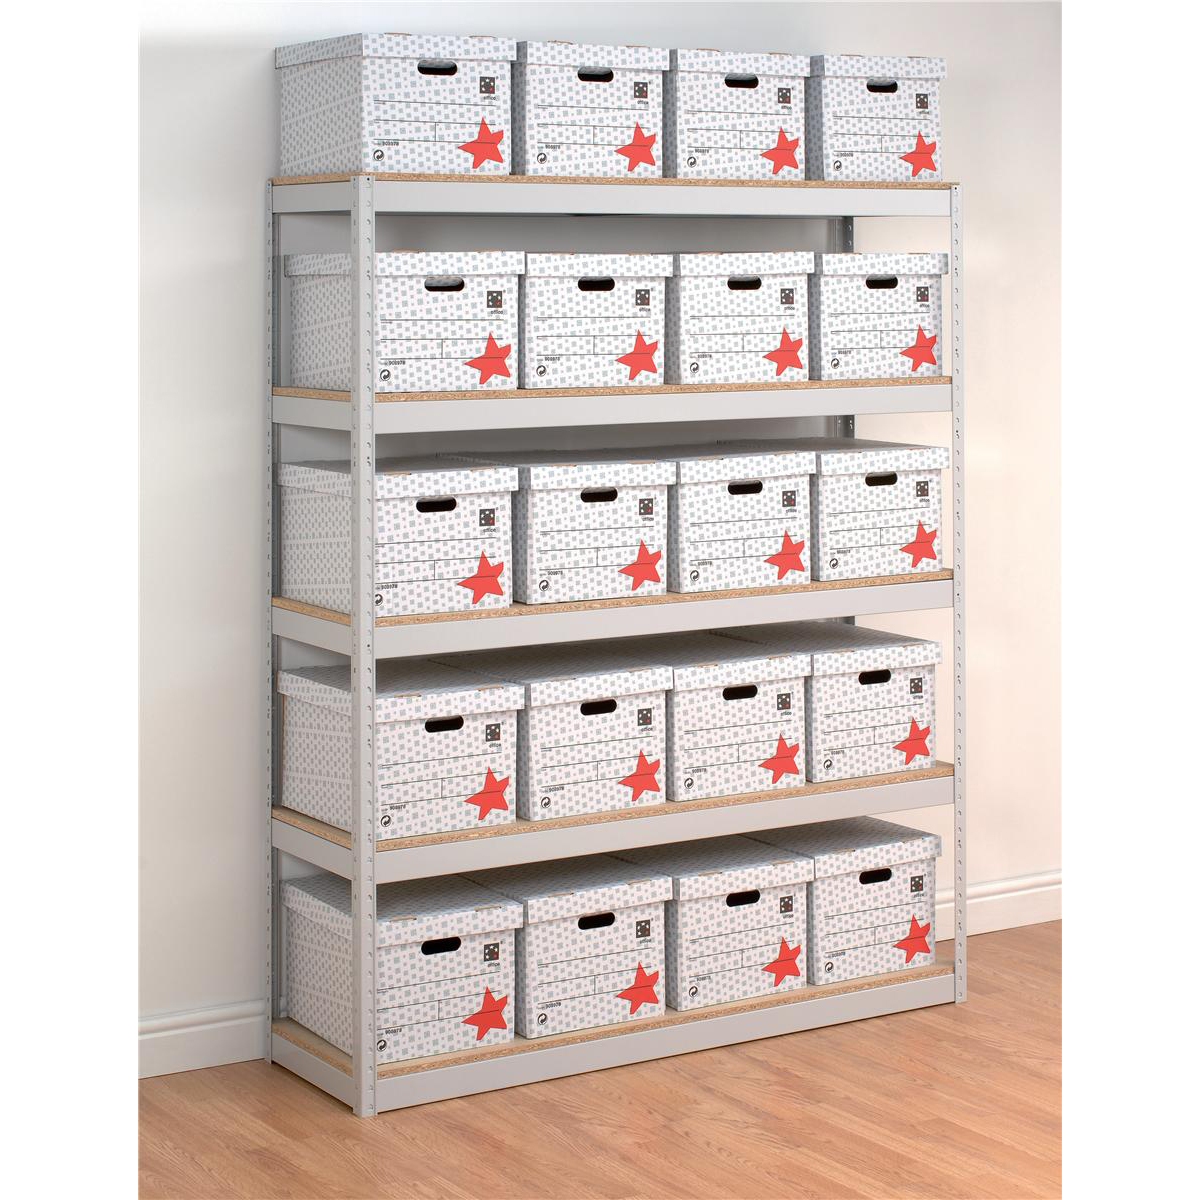 Influx Archive Shelving Unit Heavy-duty Extra Wide 5 Shelves Capacity 100kg